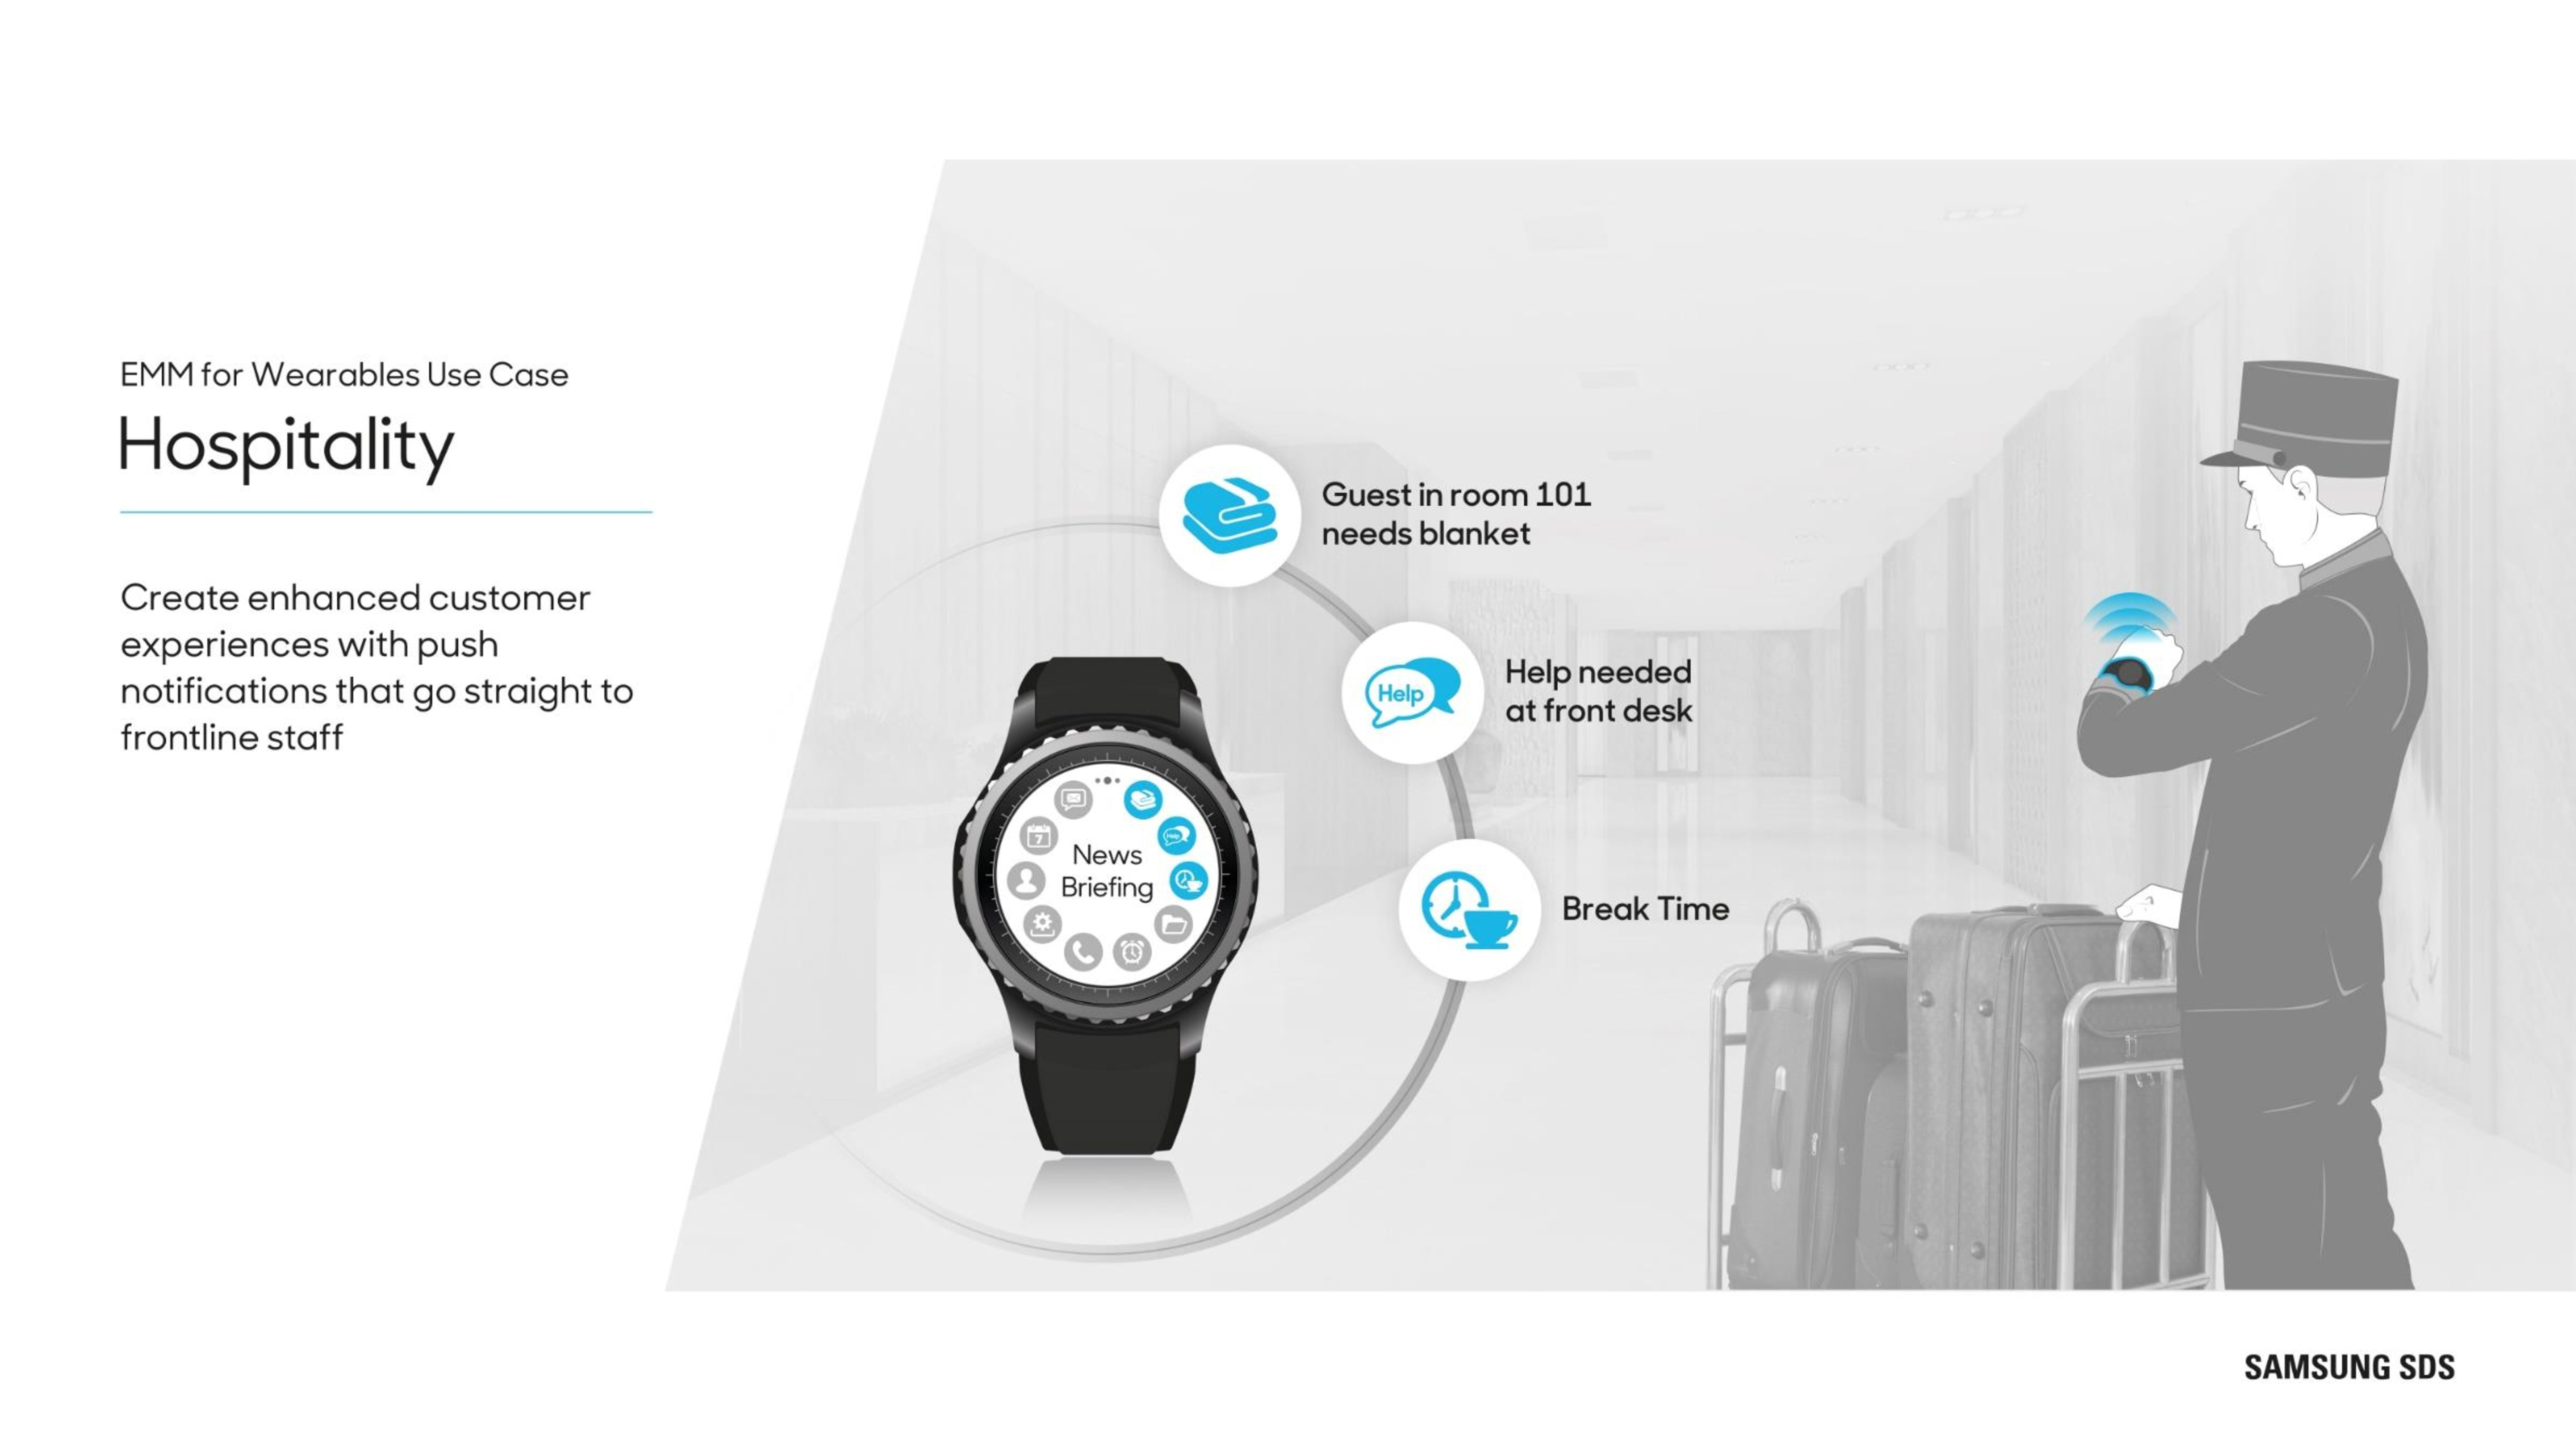 Wearables in Hospitality Create enhanced customer experience with push notifications that go straight to frontline staff